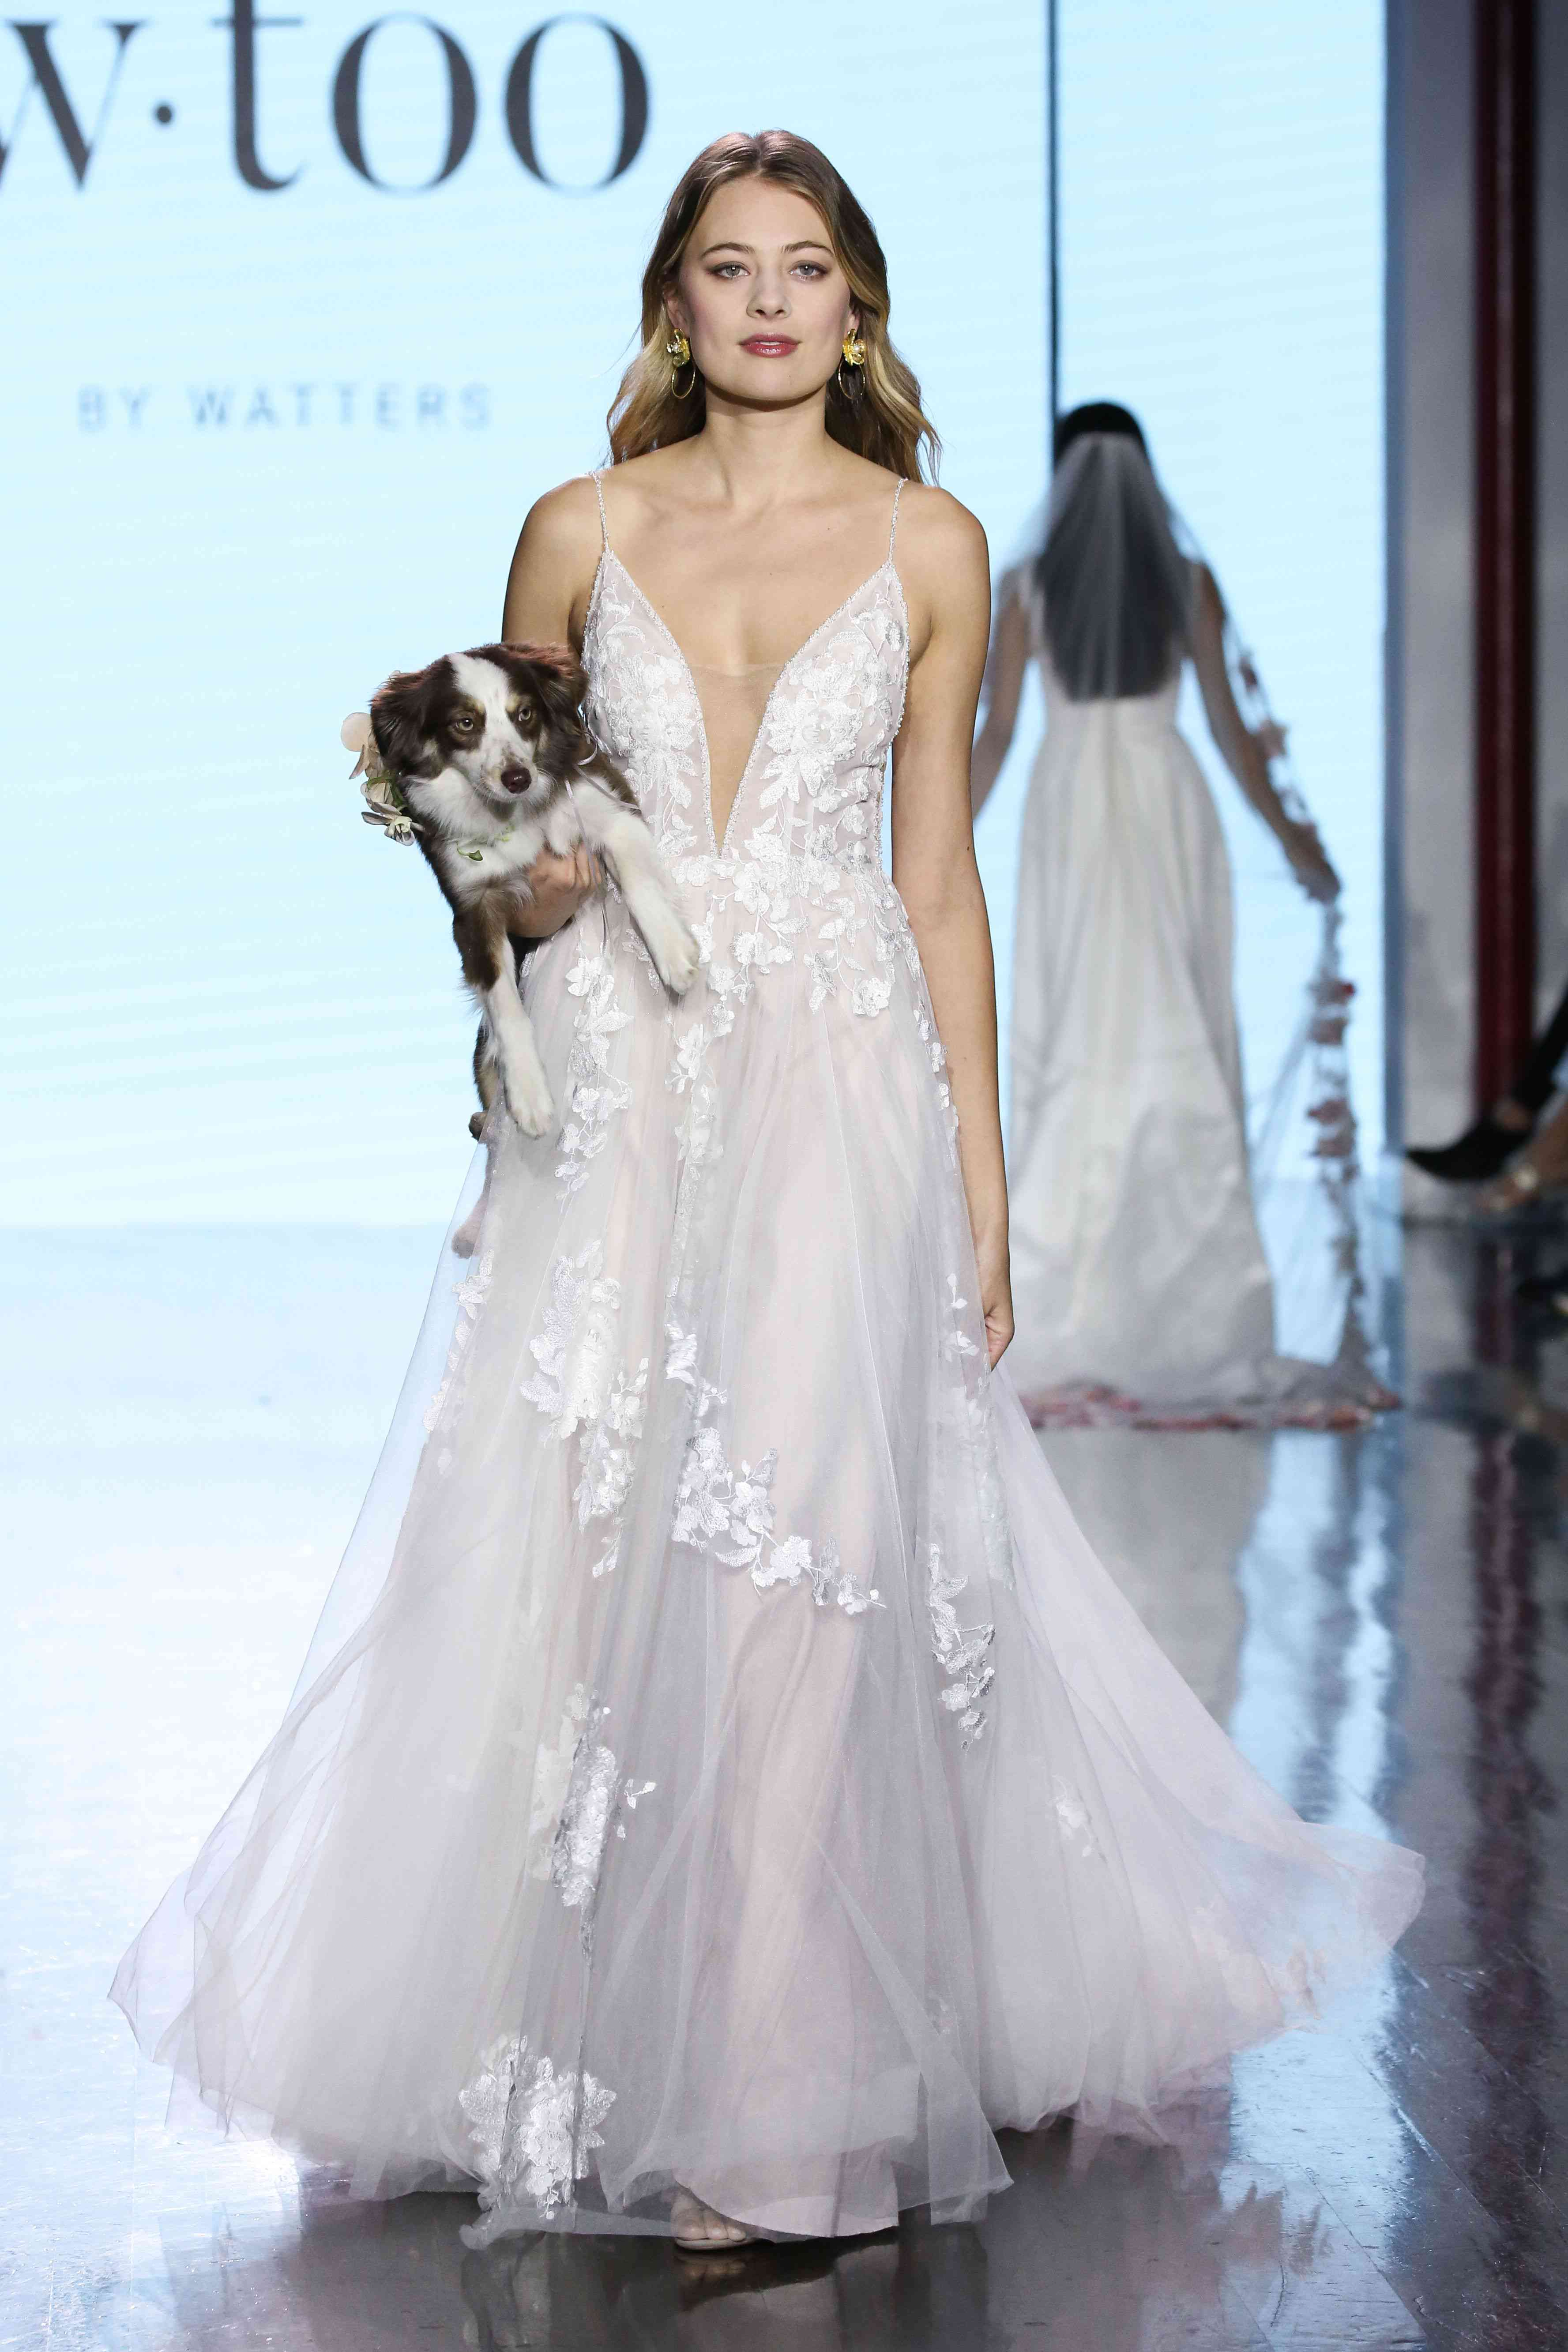 Model in tulle wedding dress with a plunging V neckline, lace appliques and beaded straps